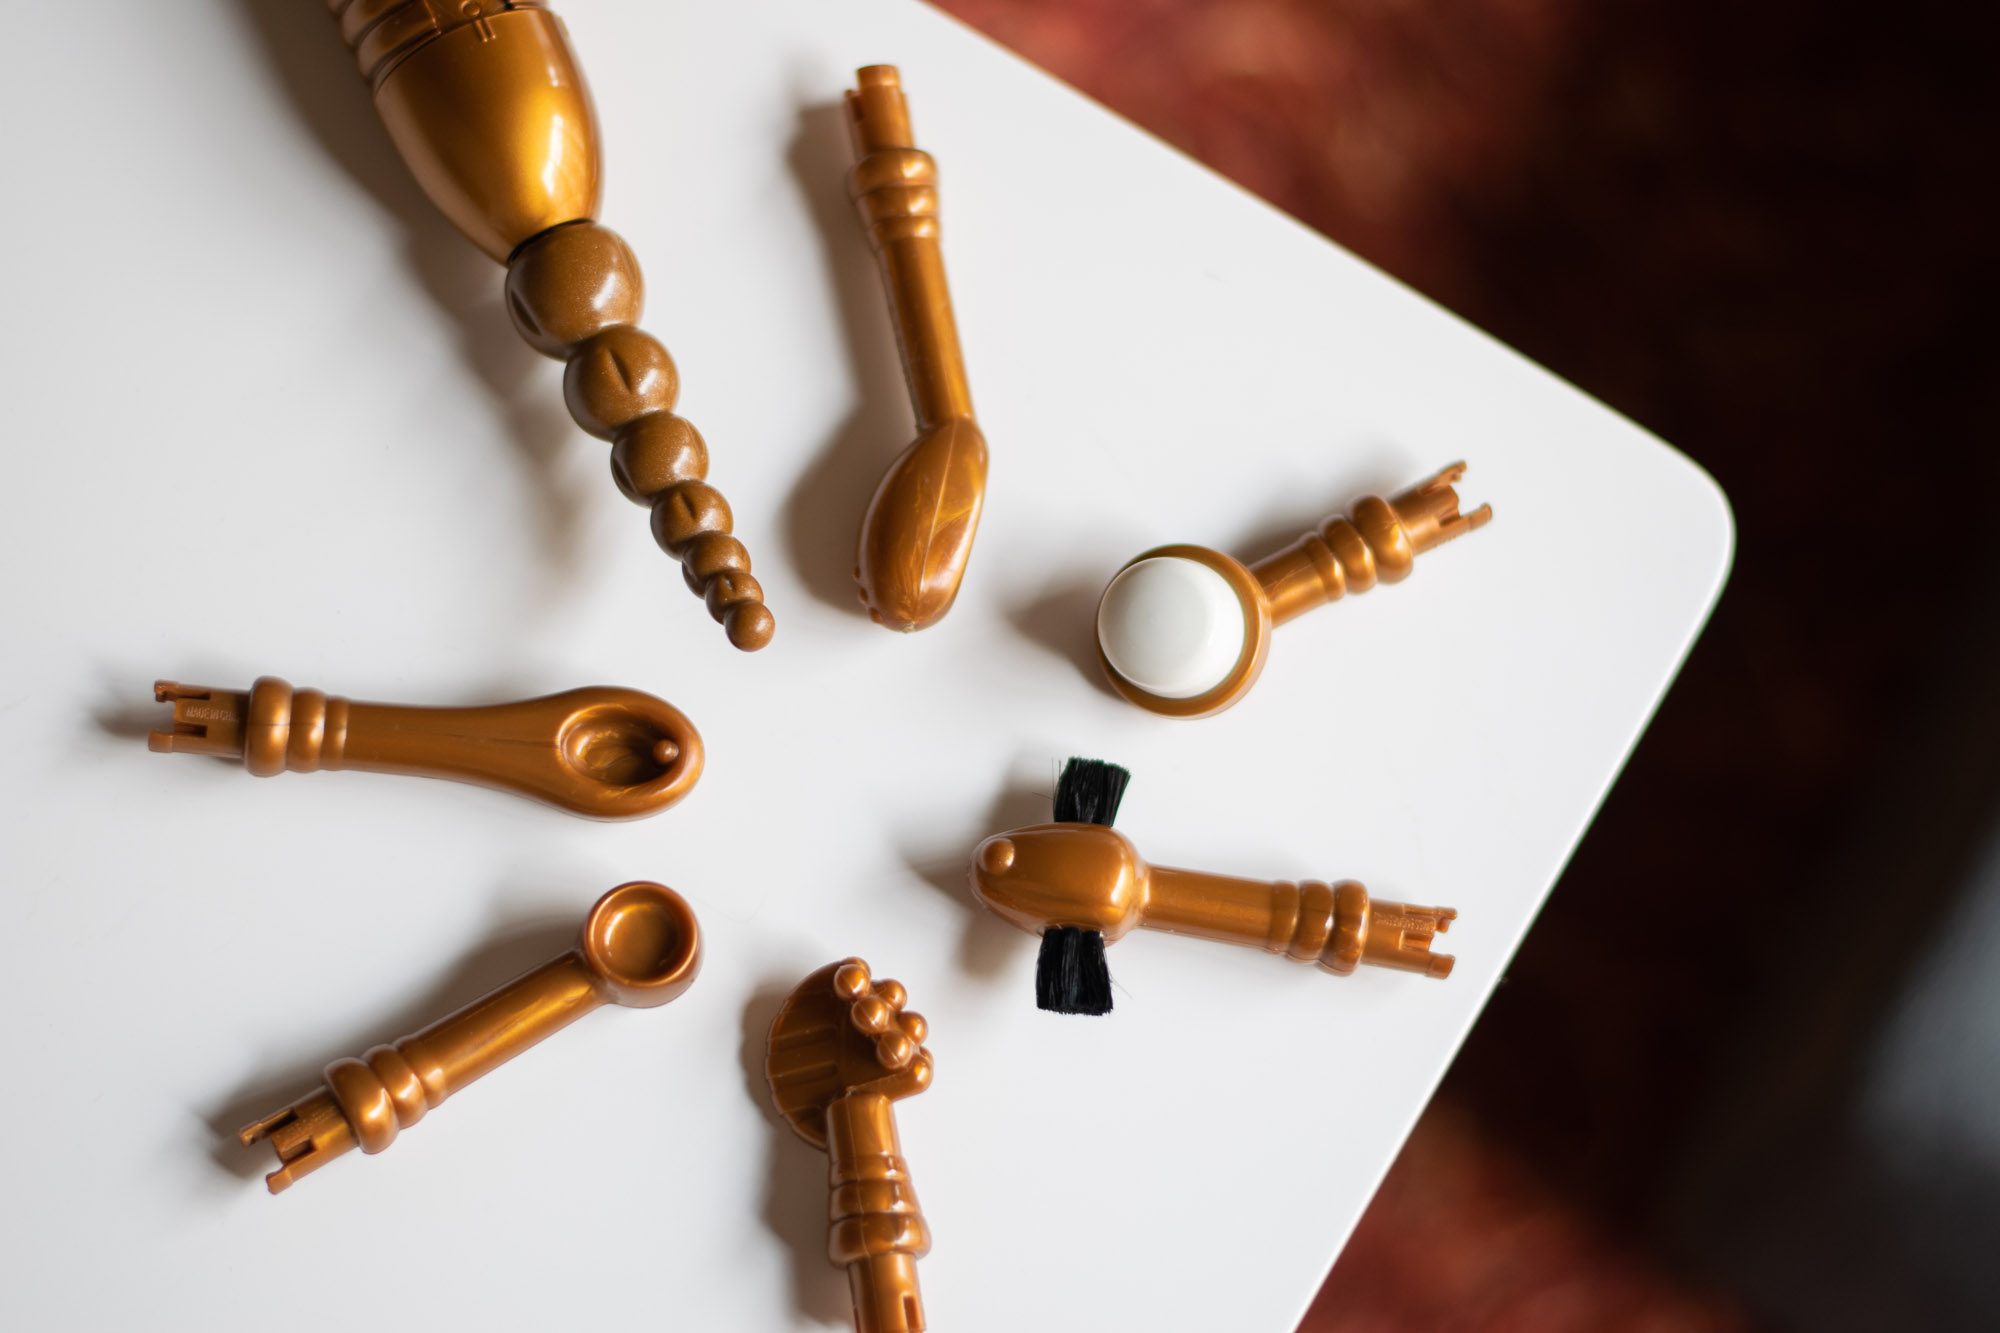 Eroscillator attachments in a circle on a white table: Seven Pearls of the Orient, G-Point, Ultra-Soft Finger Tip, French Legionnaire's Moustache, Grapes and Cockscomb, Ball and Cup, and Golden Spoon.